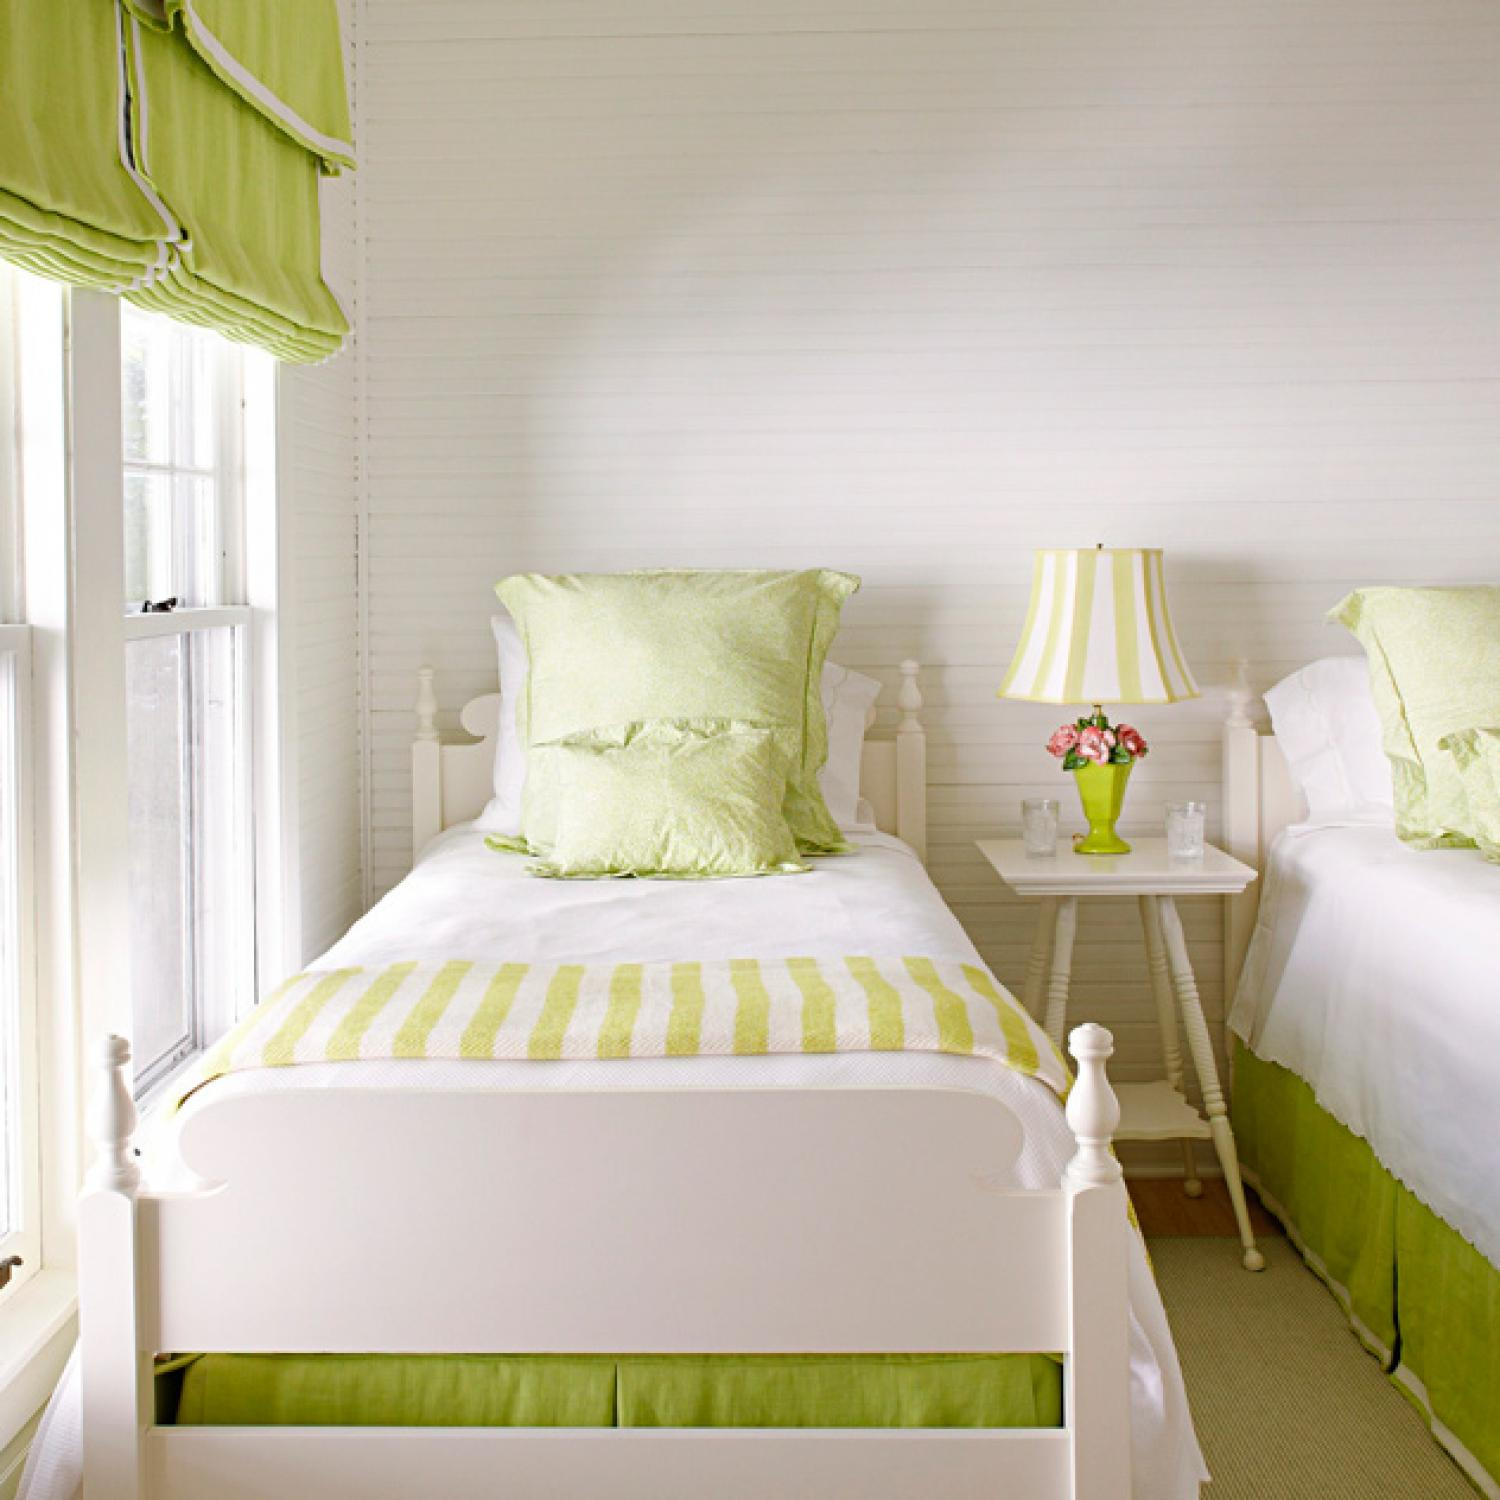 Grand Storage Ideas Small Spaces Bed Designs Small Spaces Small Bedrooms Home Bed Ideas bedroom Bed Ideas For Small Bedrooms